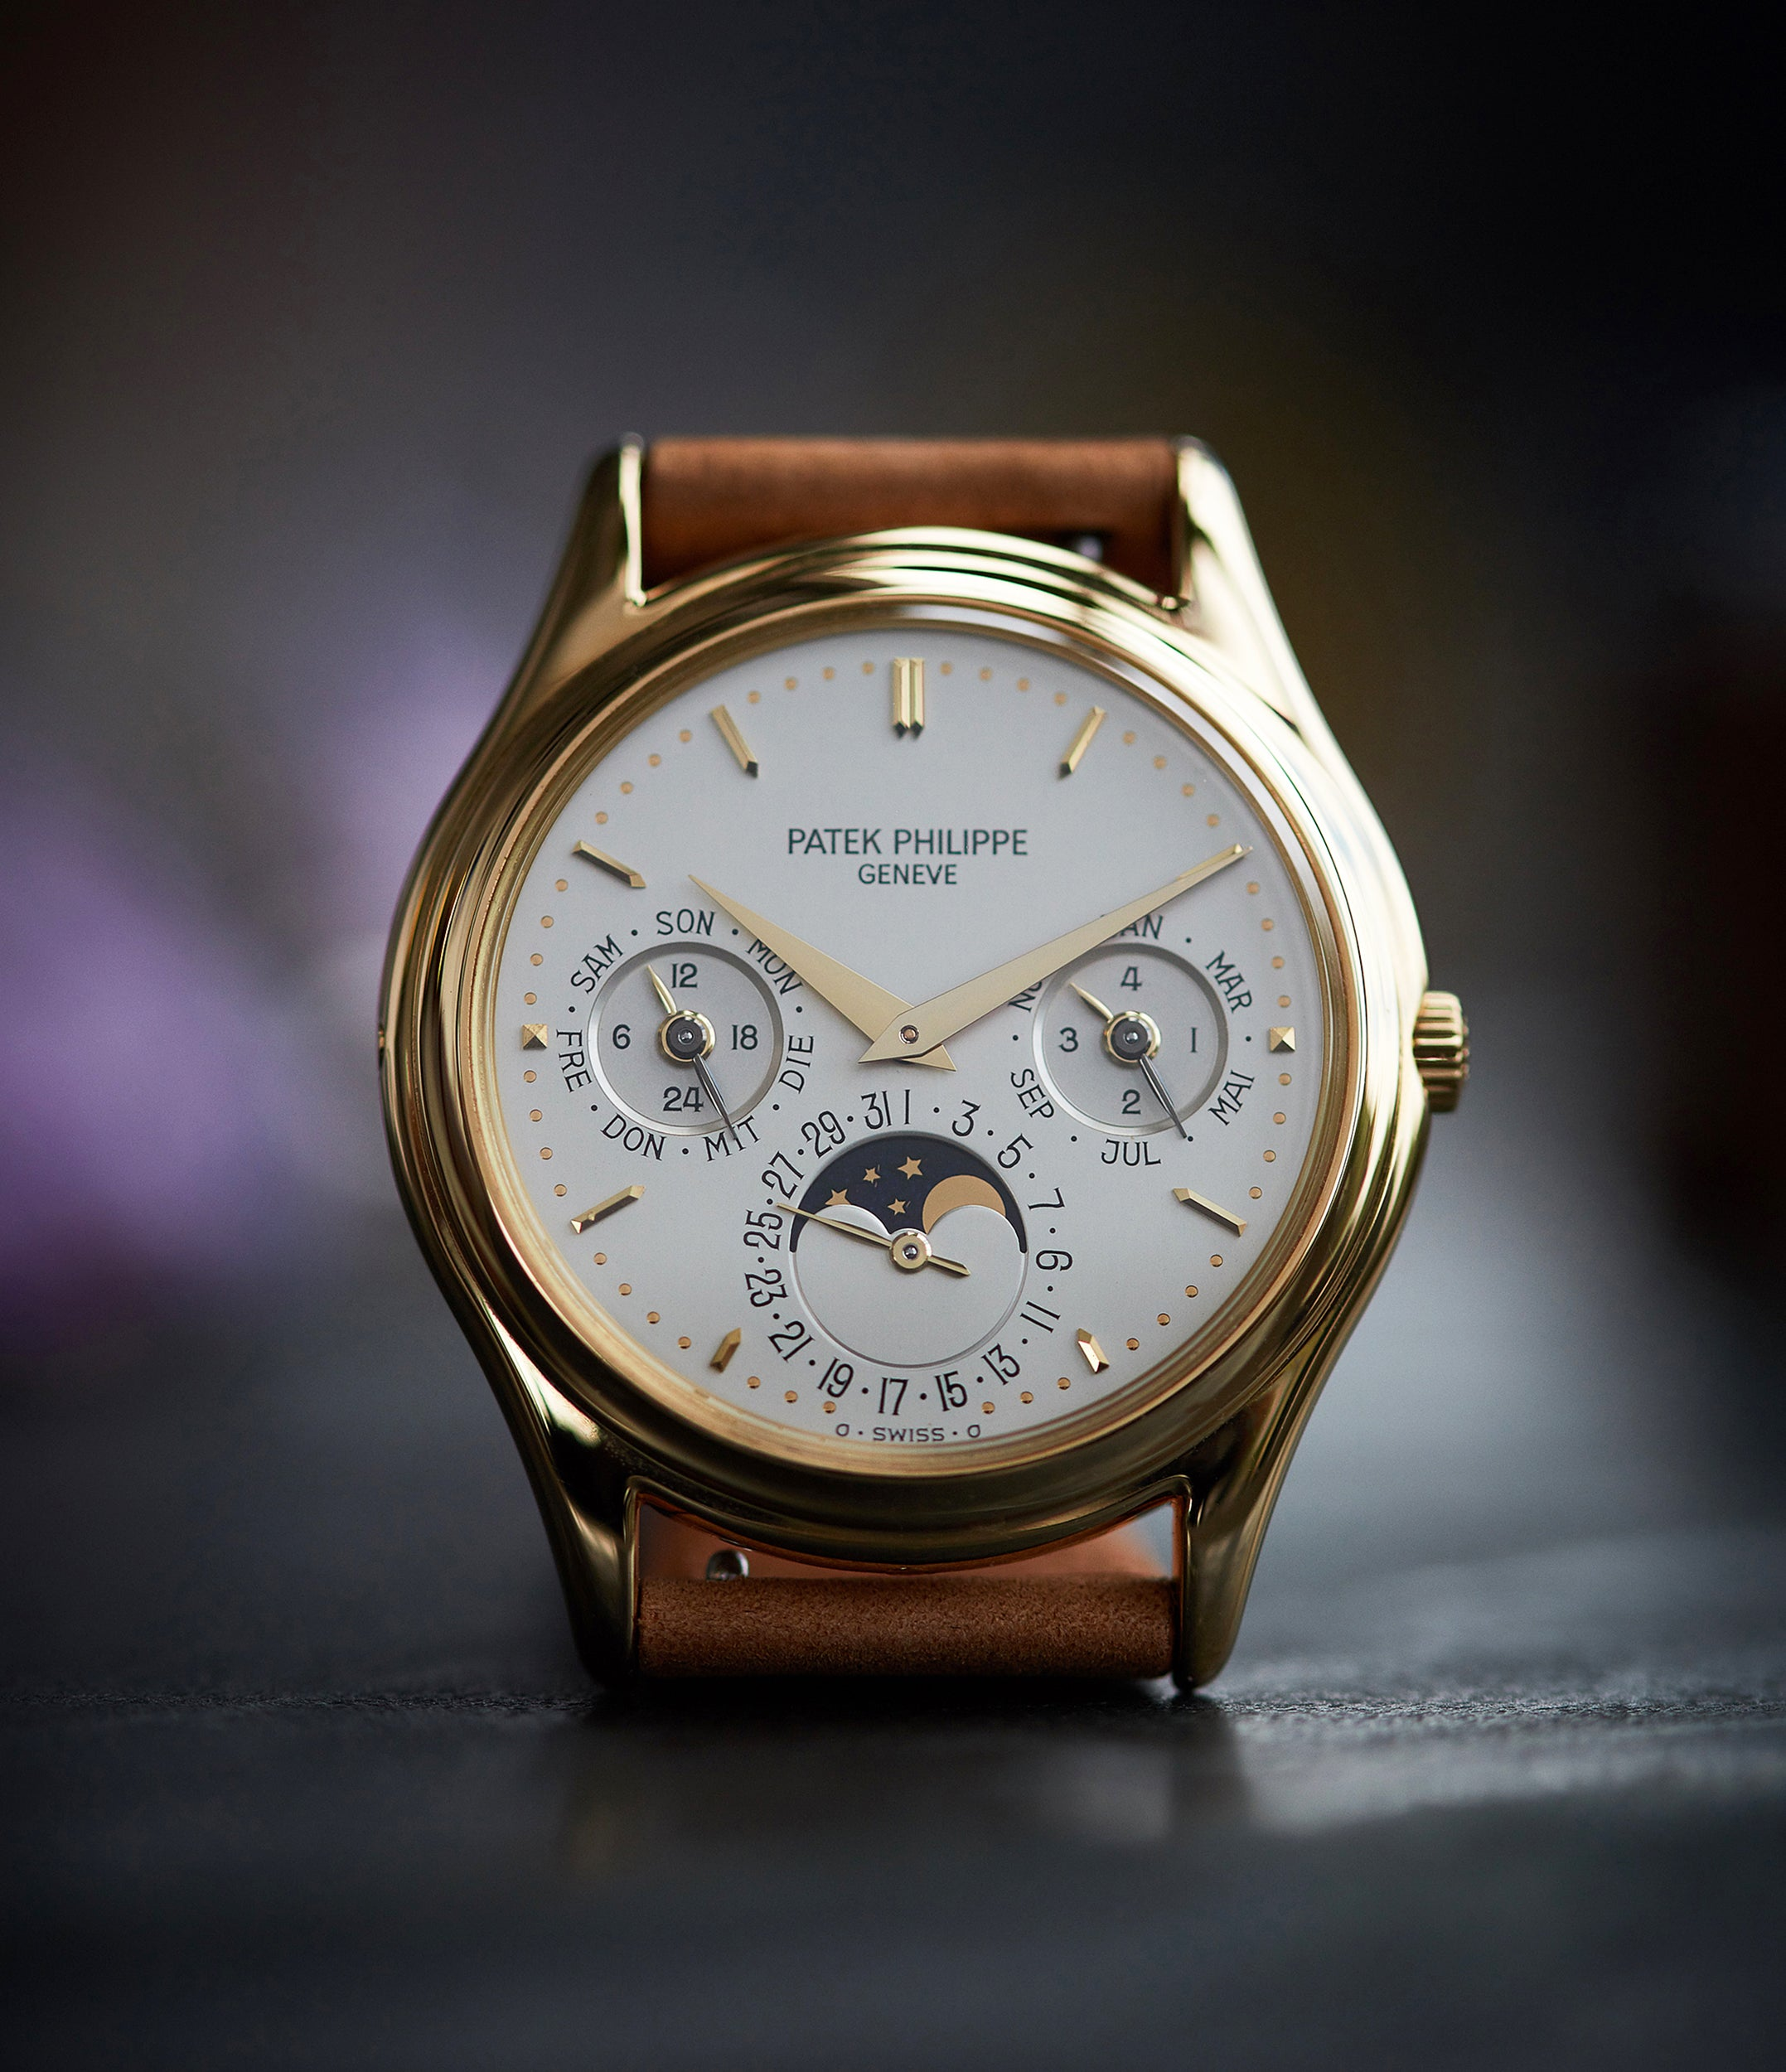 Patek Philippe 3940J first series yellow gold perpetual calendar dress watch for sale online at A Collected Man London